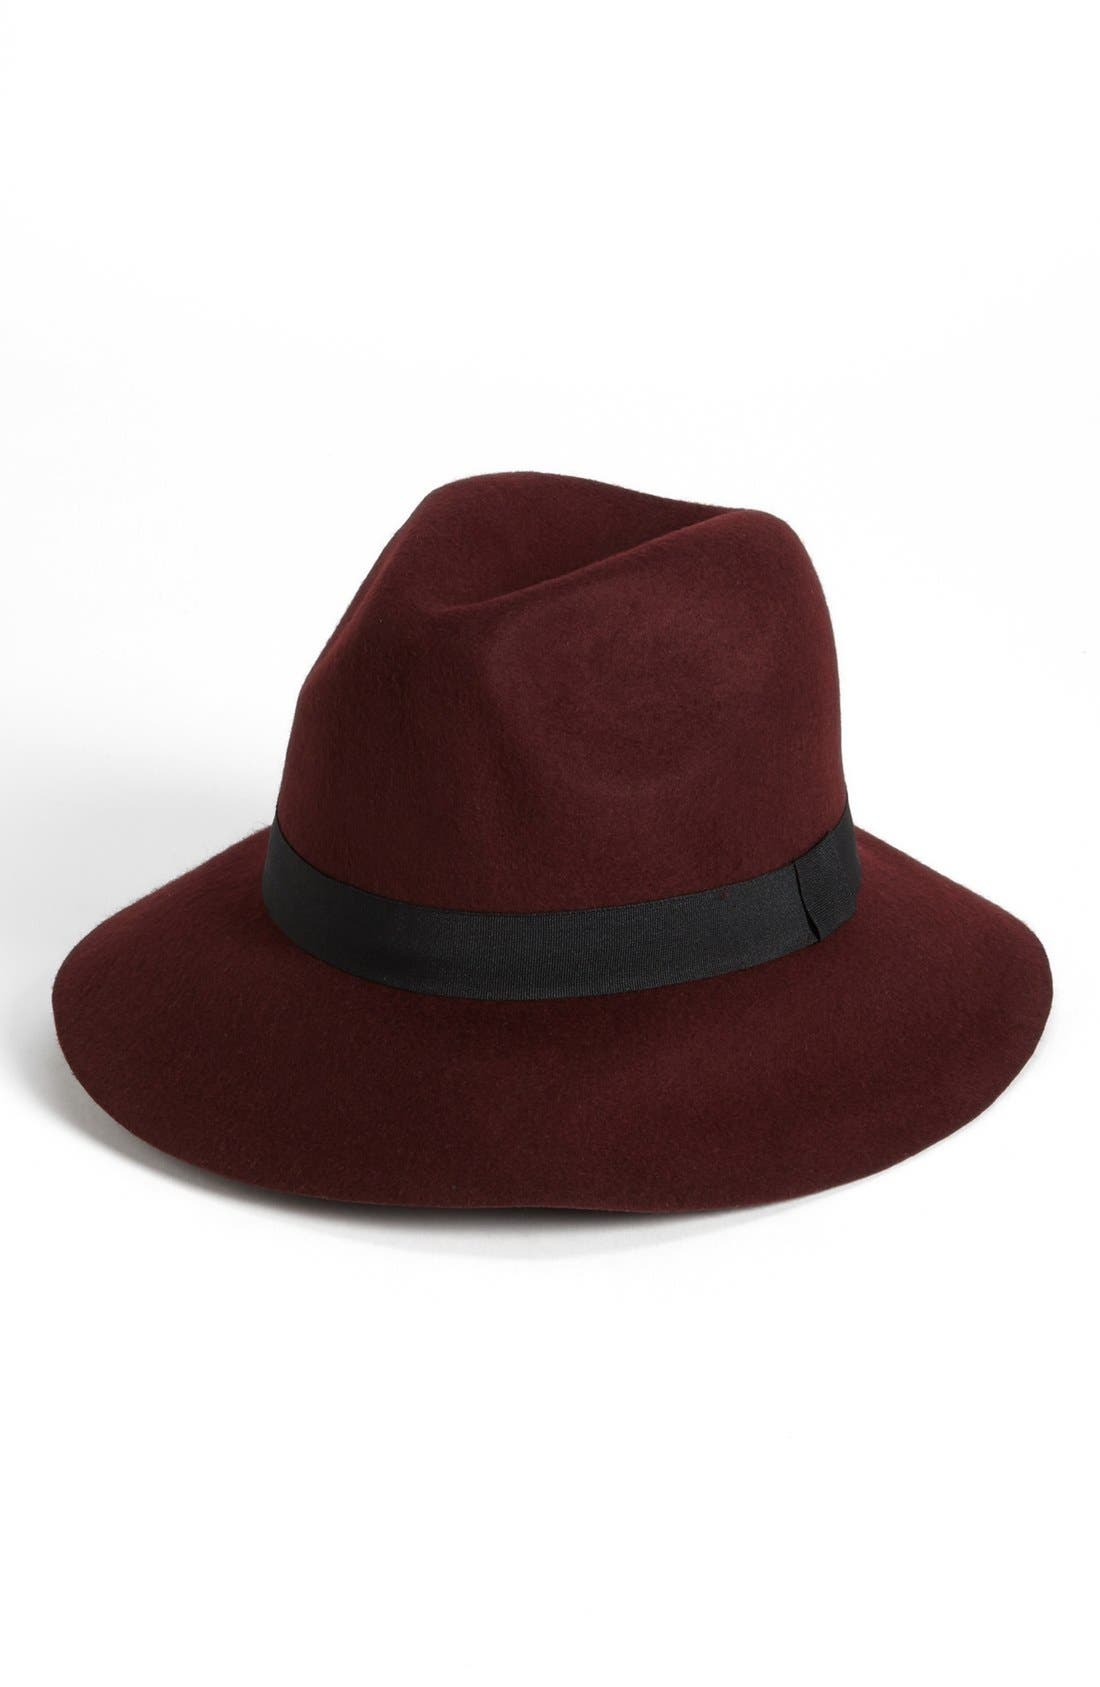 Alternate Image 1 Selected - David & Young Felt Fedora (Online Only)